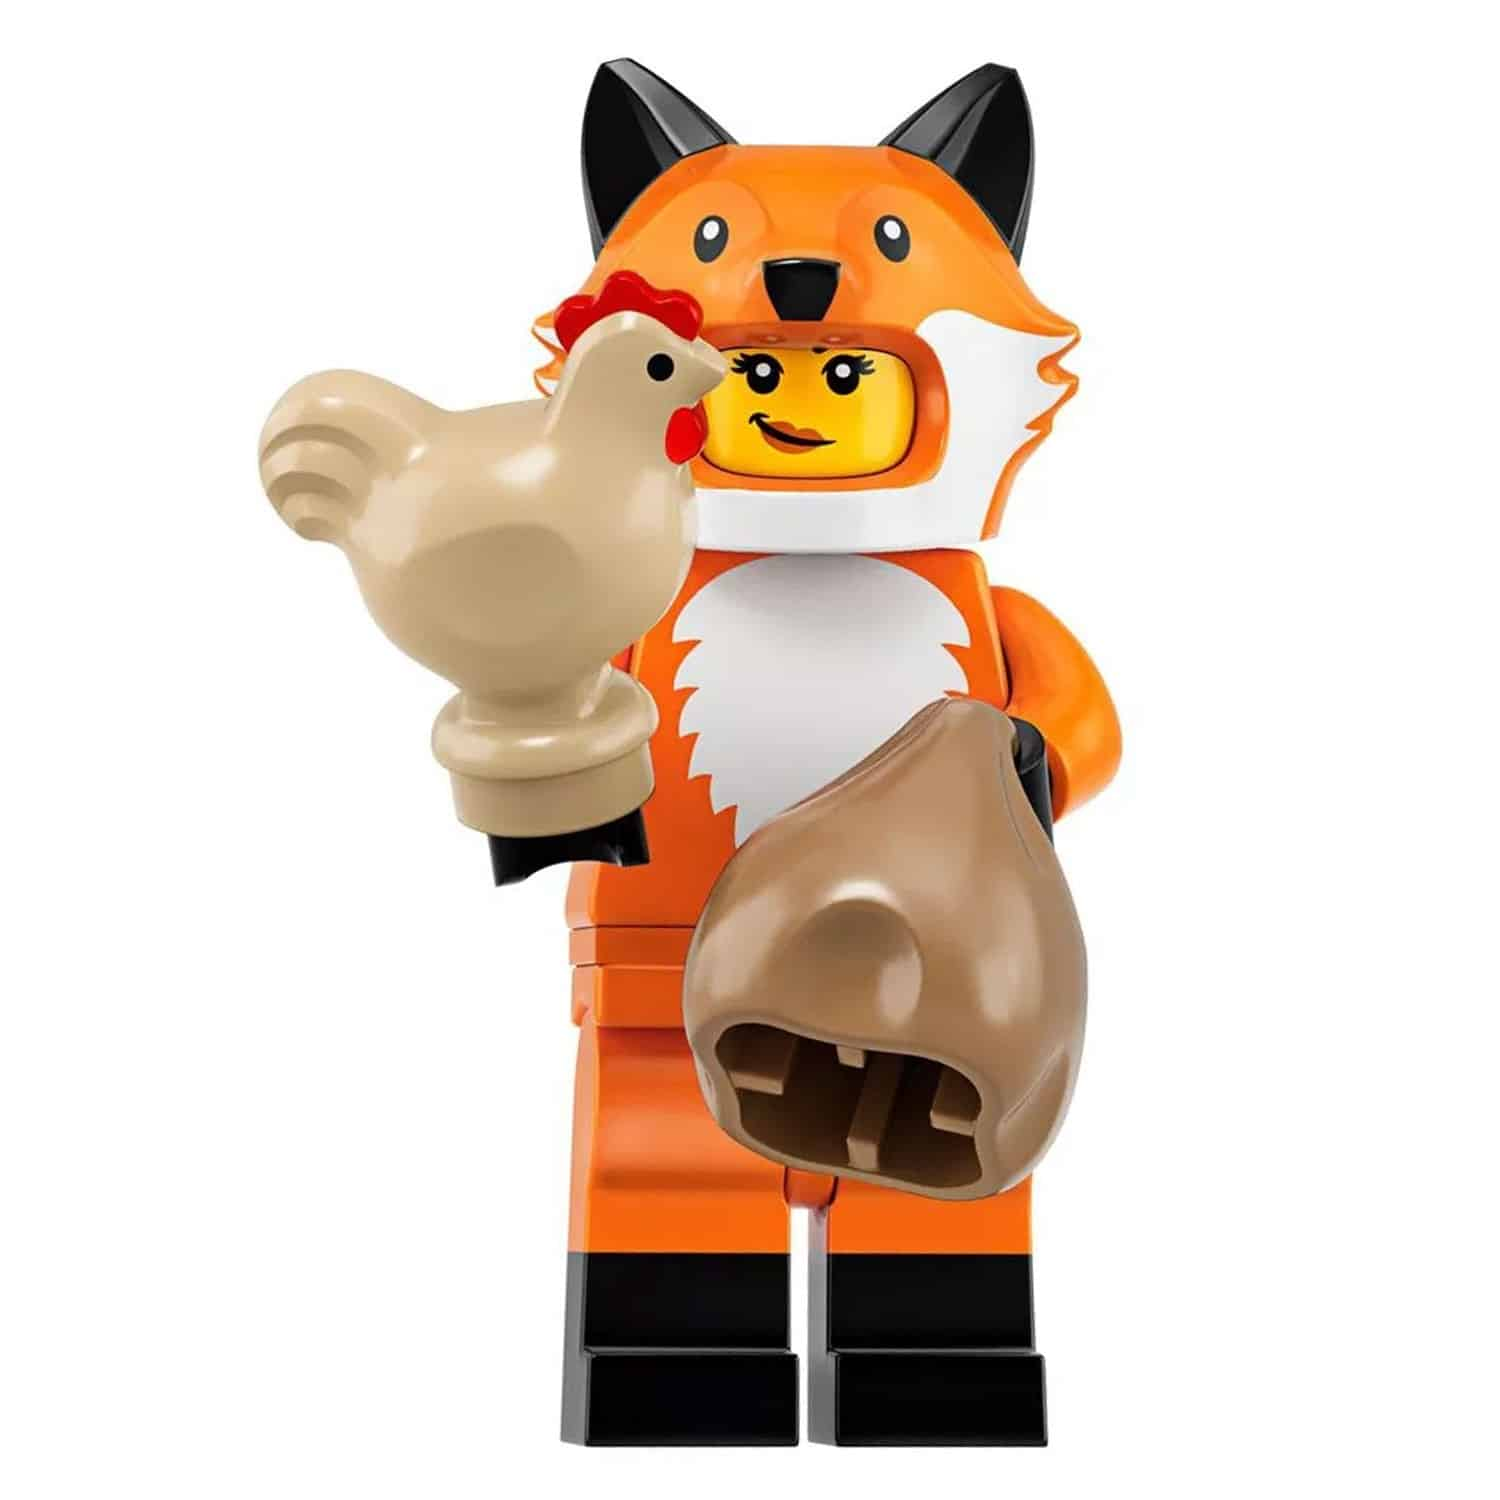 LEGO Fox Suit Girl Minifigure with Hen – Series 19 CMF